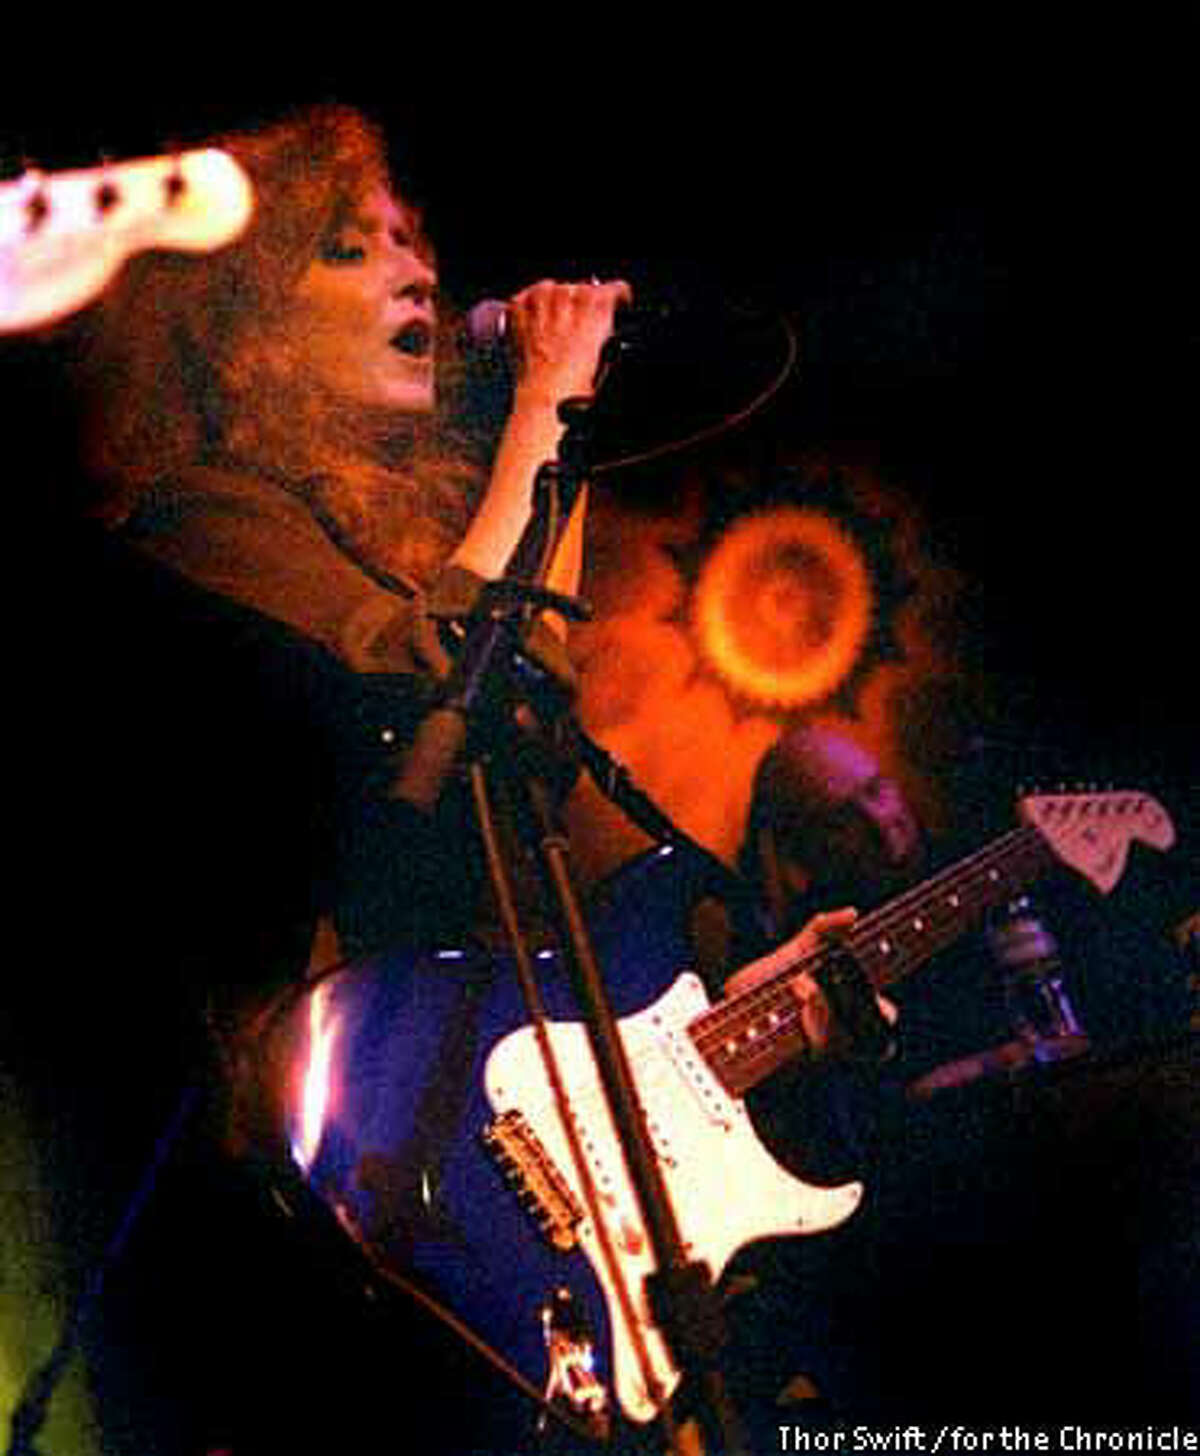 Bonnie Raitt cut loose with a set of R&B and blues songs at Mill Valley's Sweetwater after a gig by her former band, Padlock. Photo by Thor Swift for the Chronicle